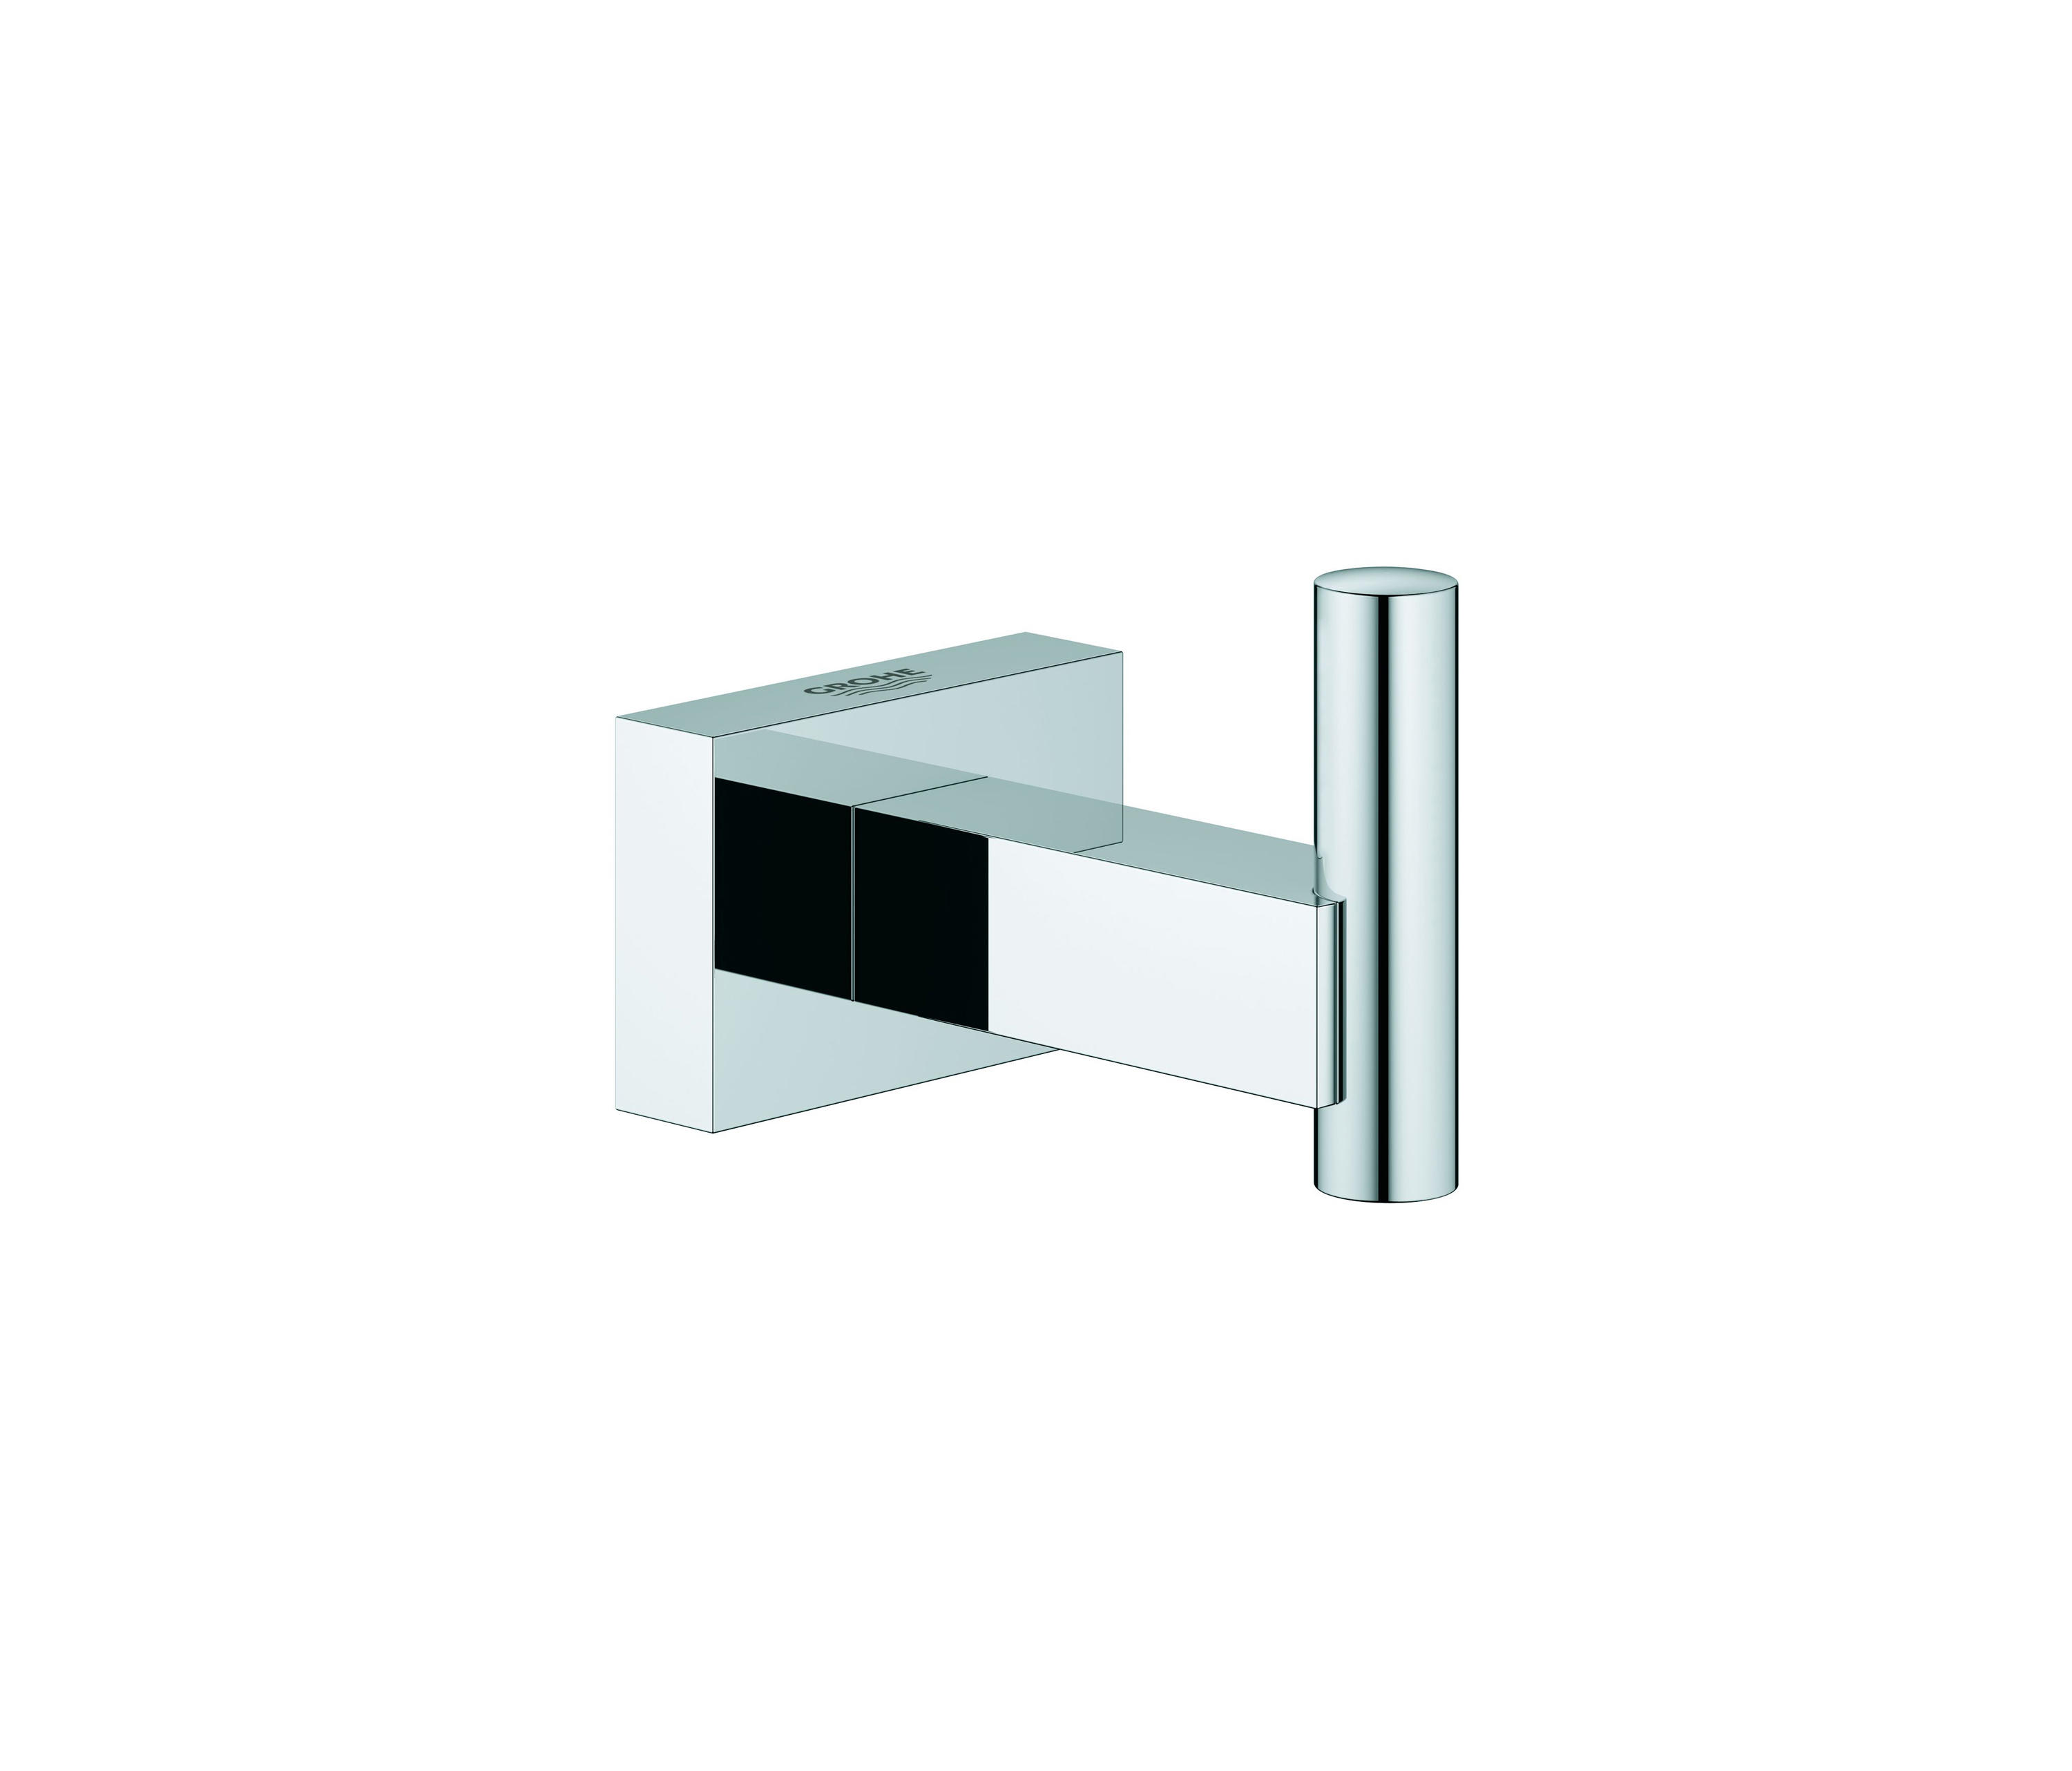 essentials cube robe hook wash basin taps from grohe architonic. Black Bedroom Furniture Sets. Home Design Ideas